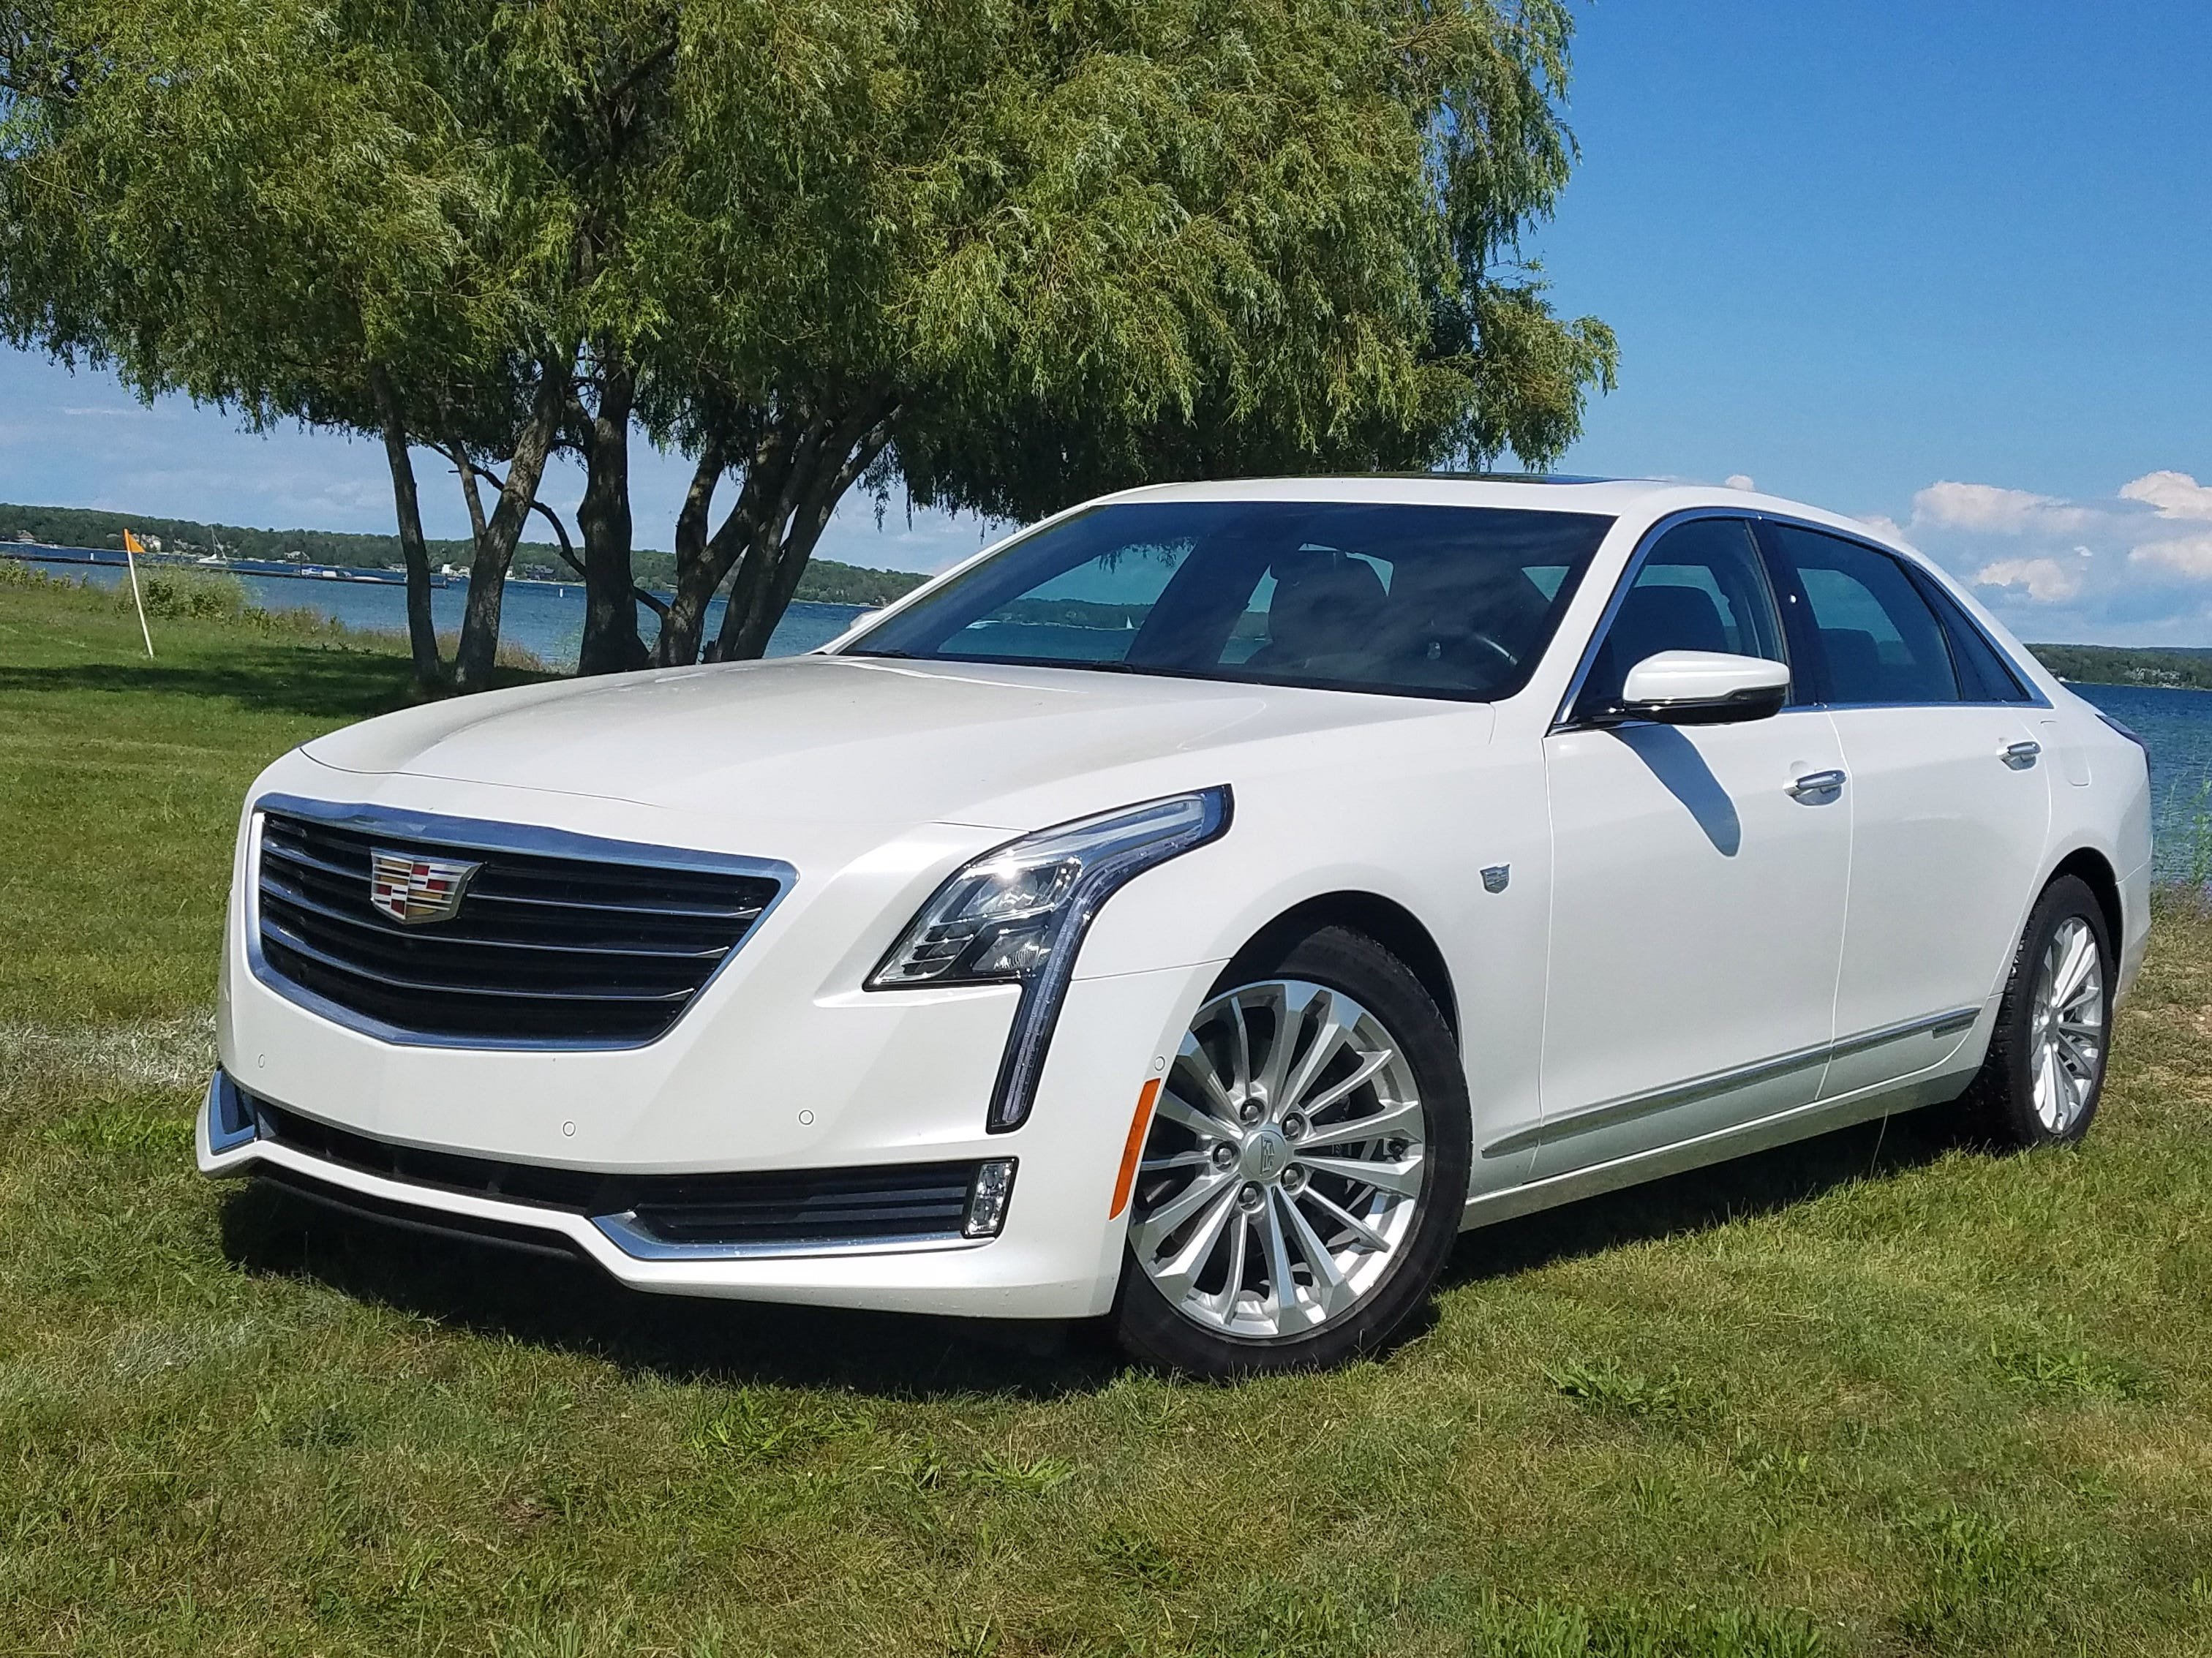 The 2017 Cadillac CT6 Plug-in sports a combined EV and gas-engine range of 440 miles, making it a reliable tool for long-range trips beyond urban charging infrastructure.